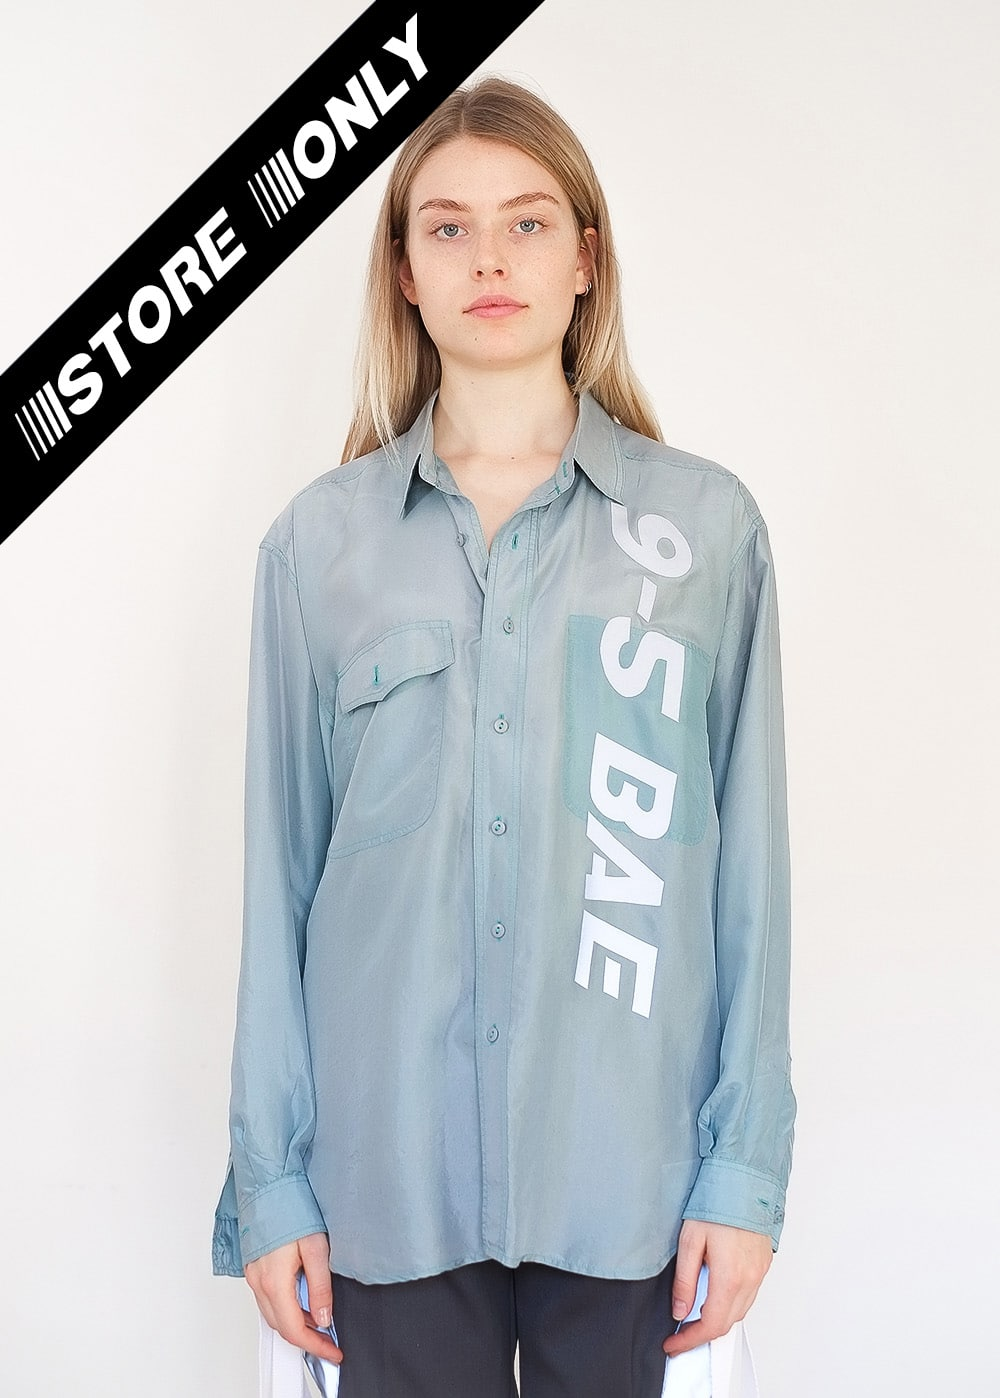 Reworked Reflective Silk Shirt 336